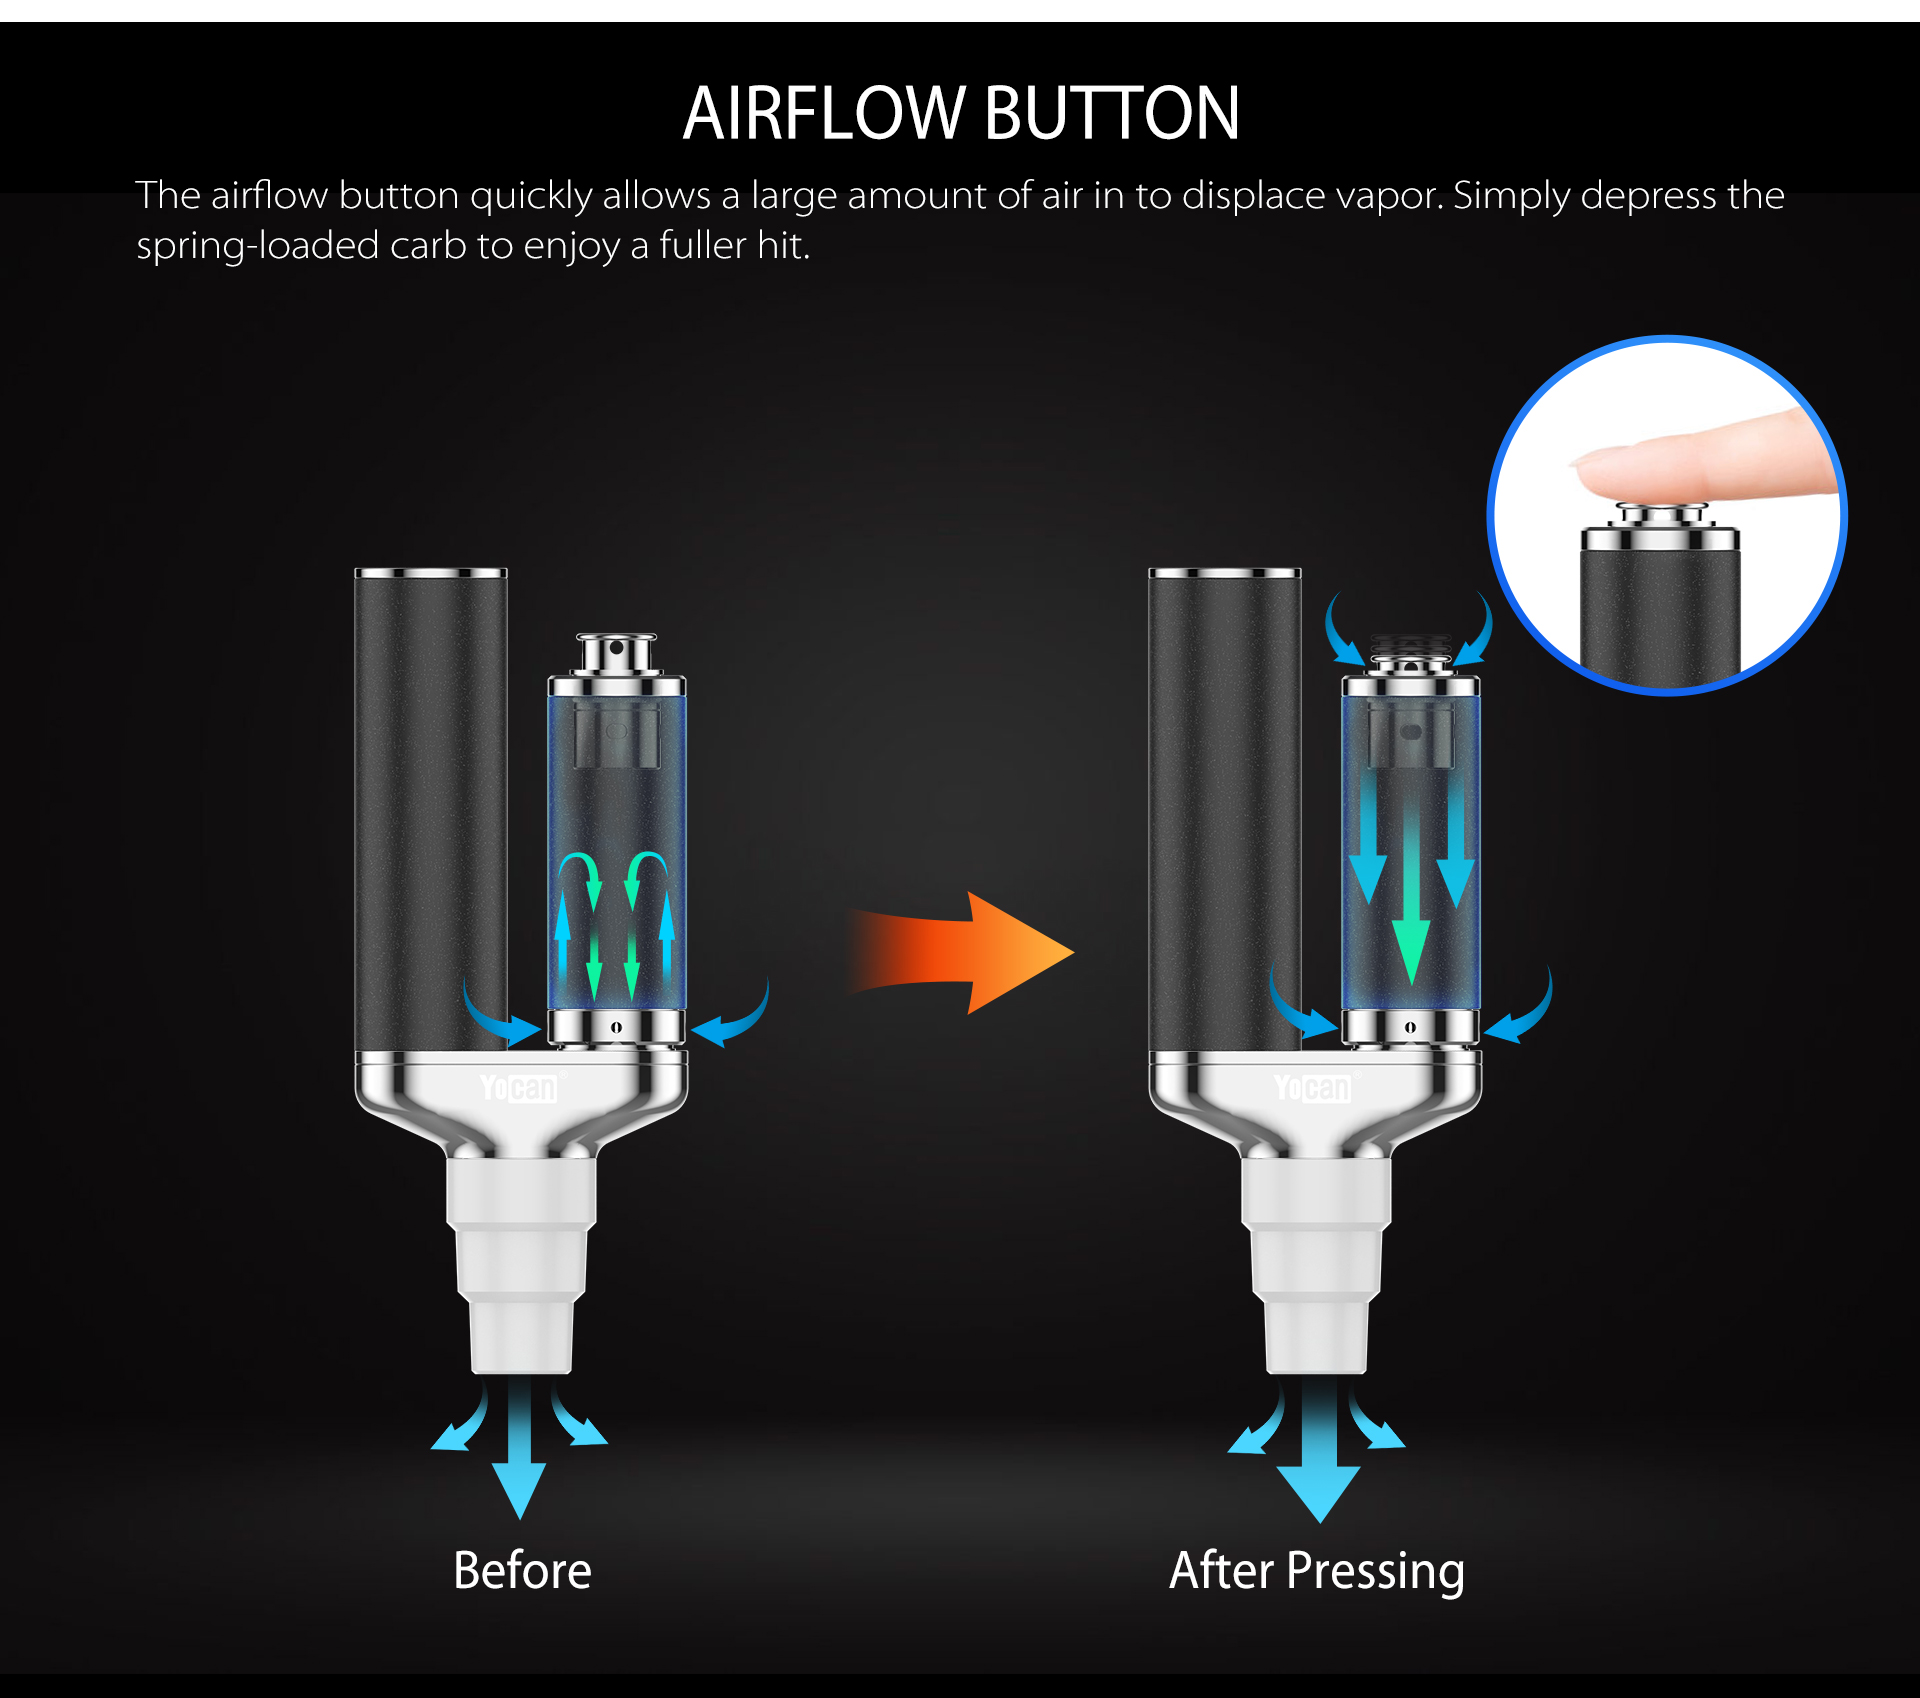 The airflow button quickly allows a large amount of air in to displace vapor.